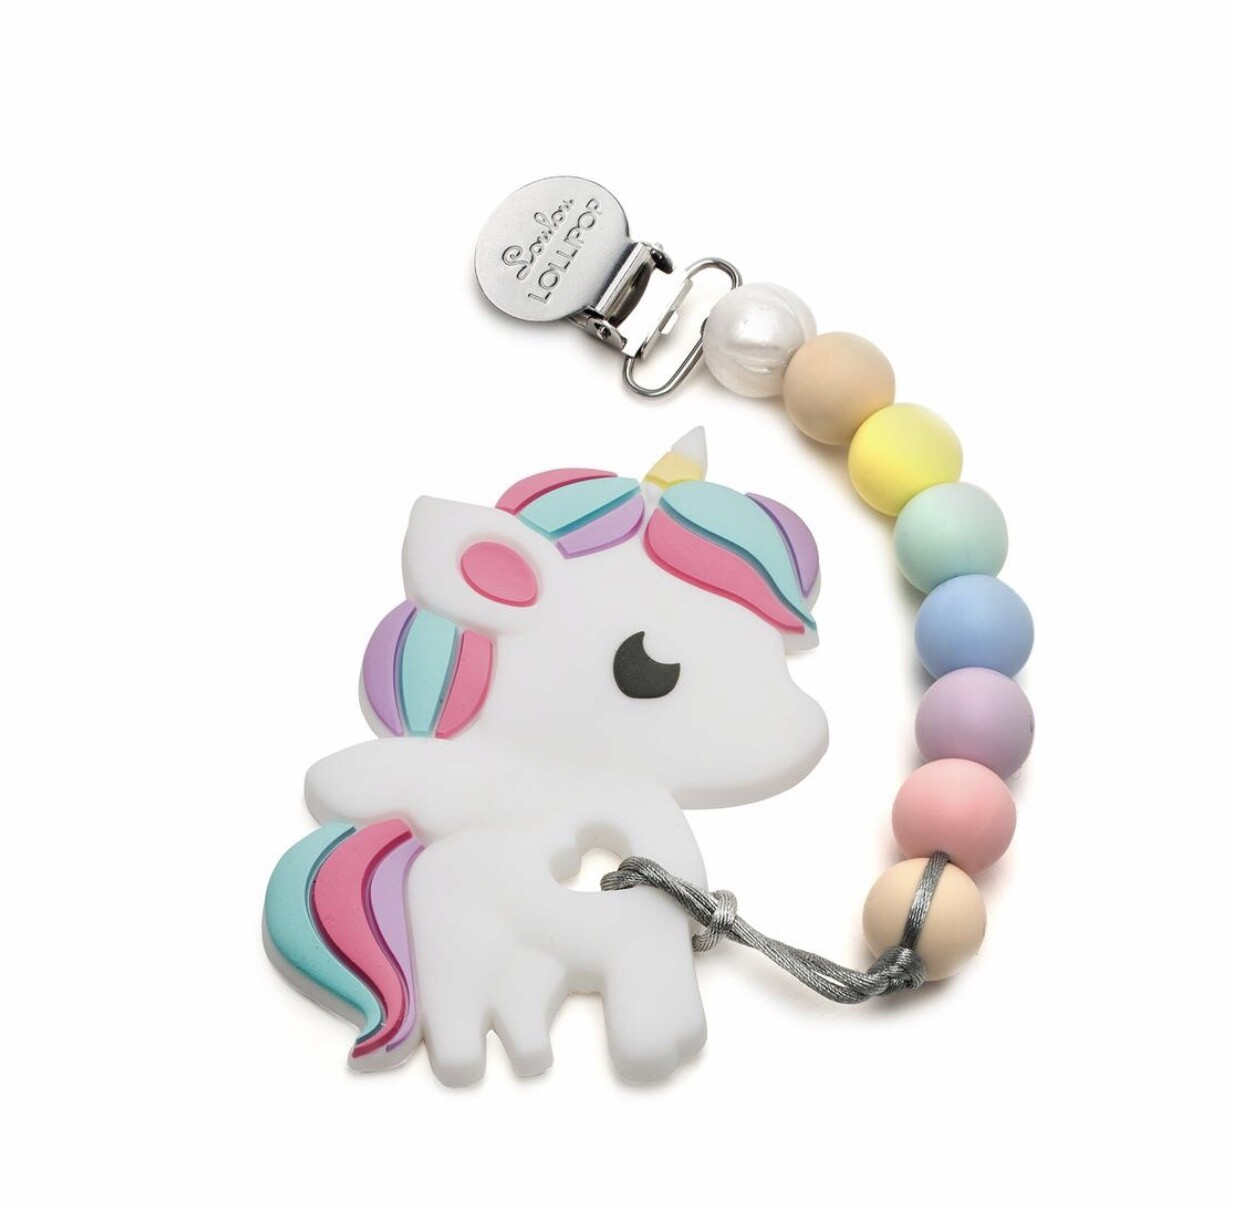 Unicorn Silicone Teether Holder Set - Cotton Candy